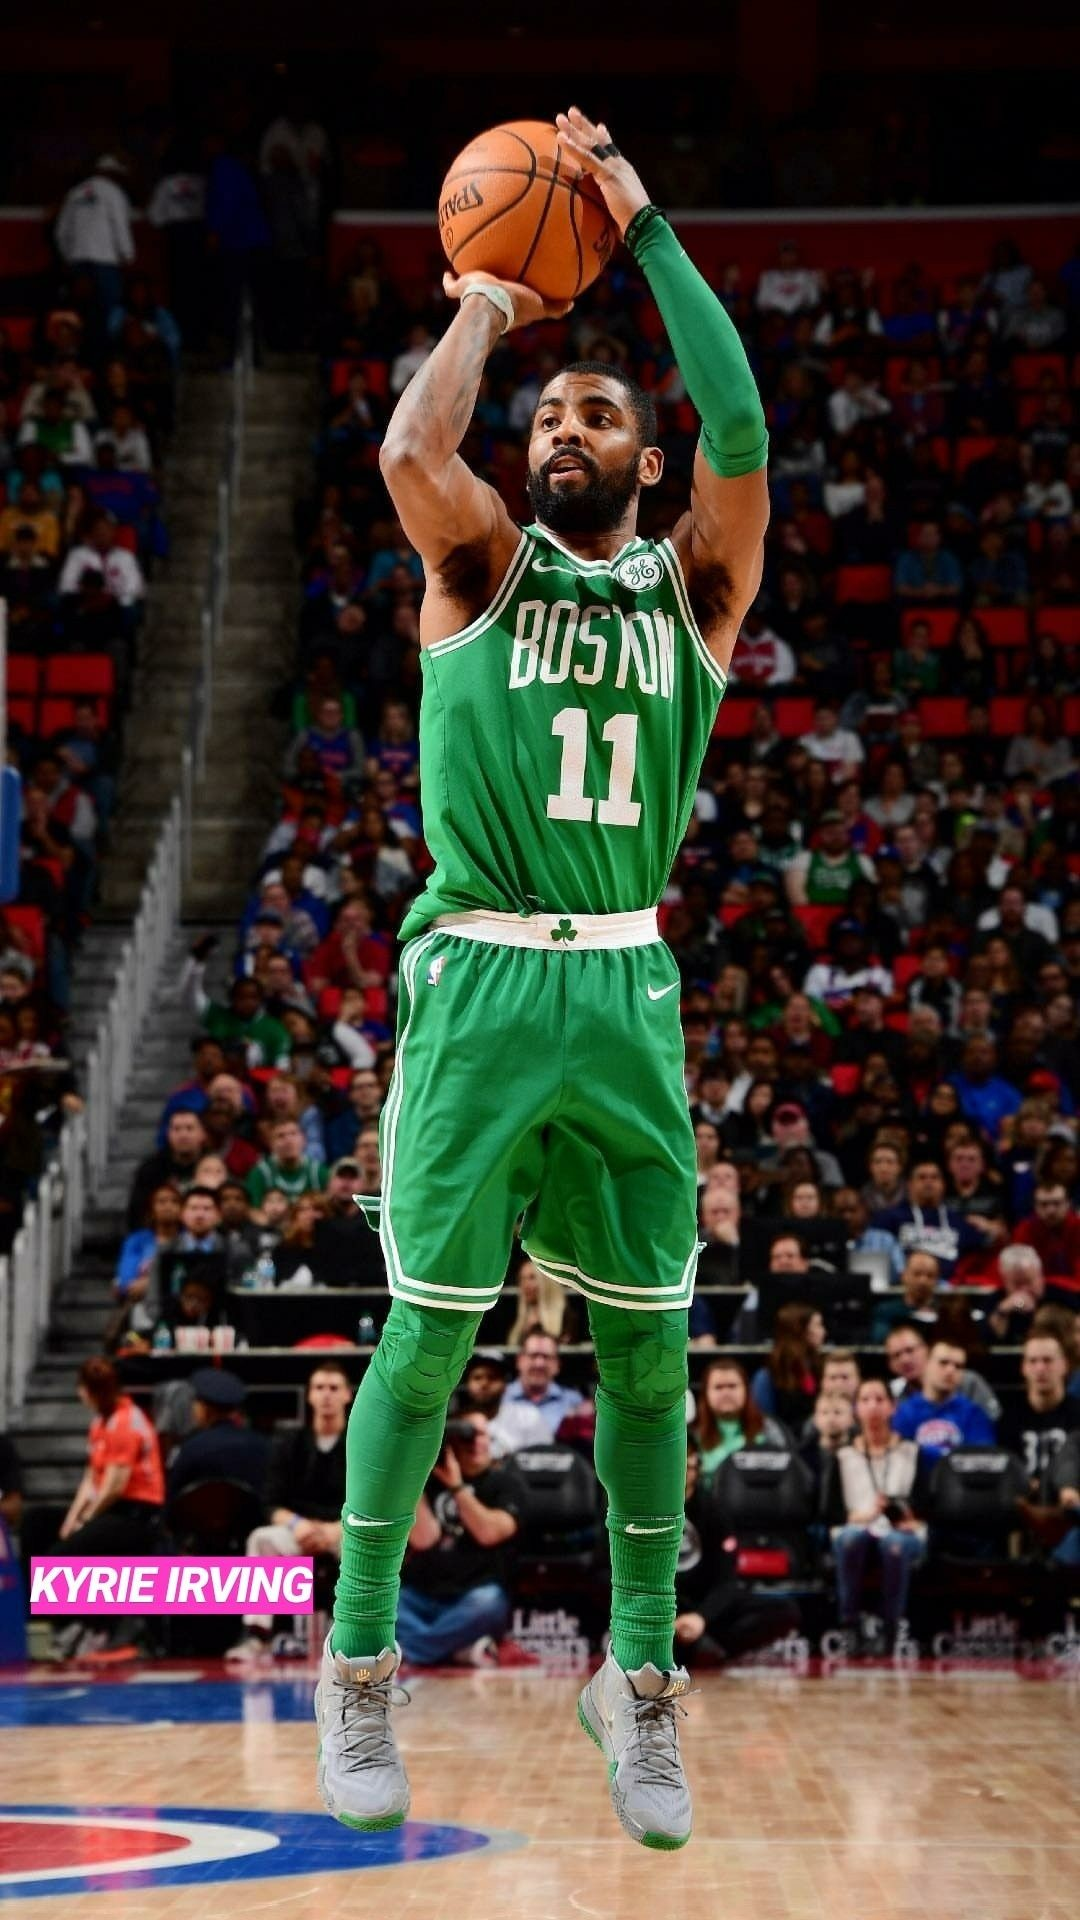 Wallpaper Kyrie Irving Posted By Zoey Peltier